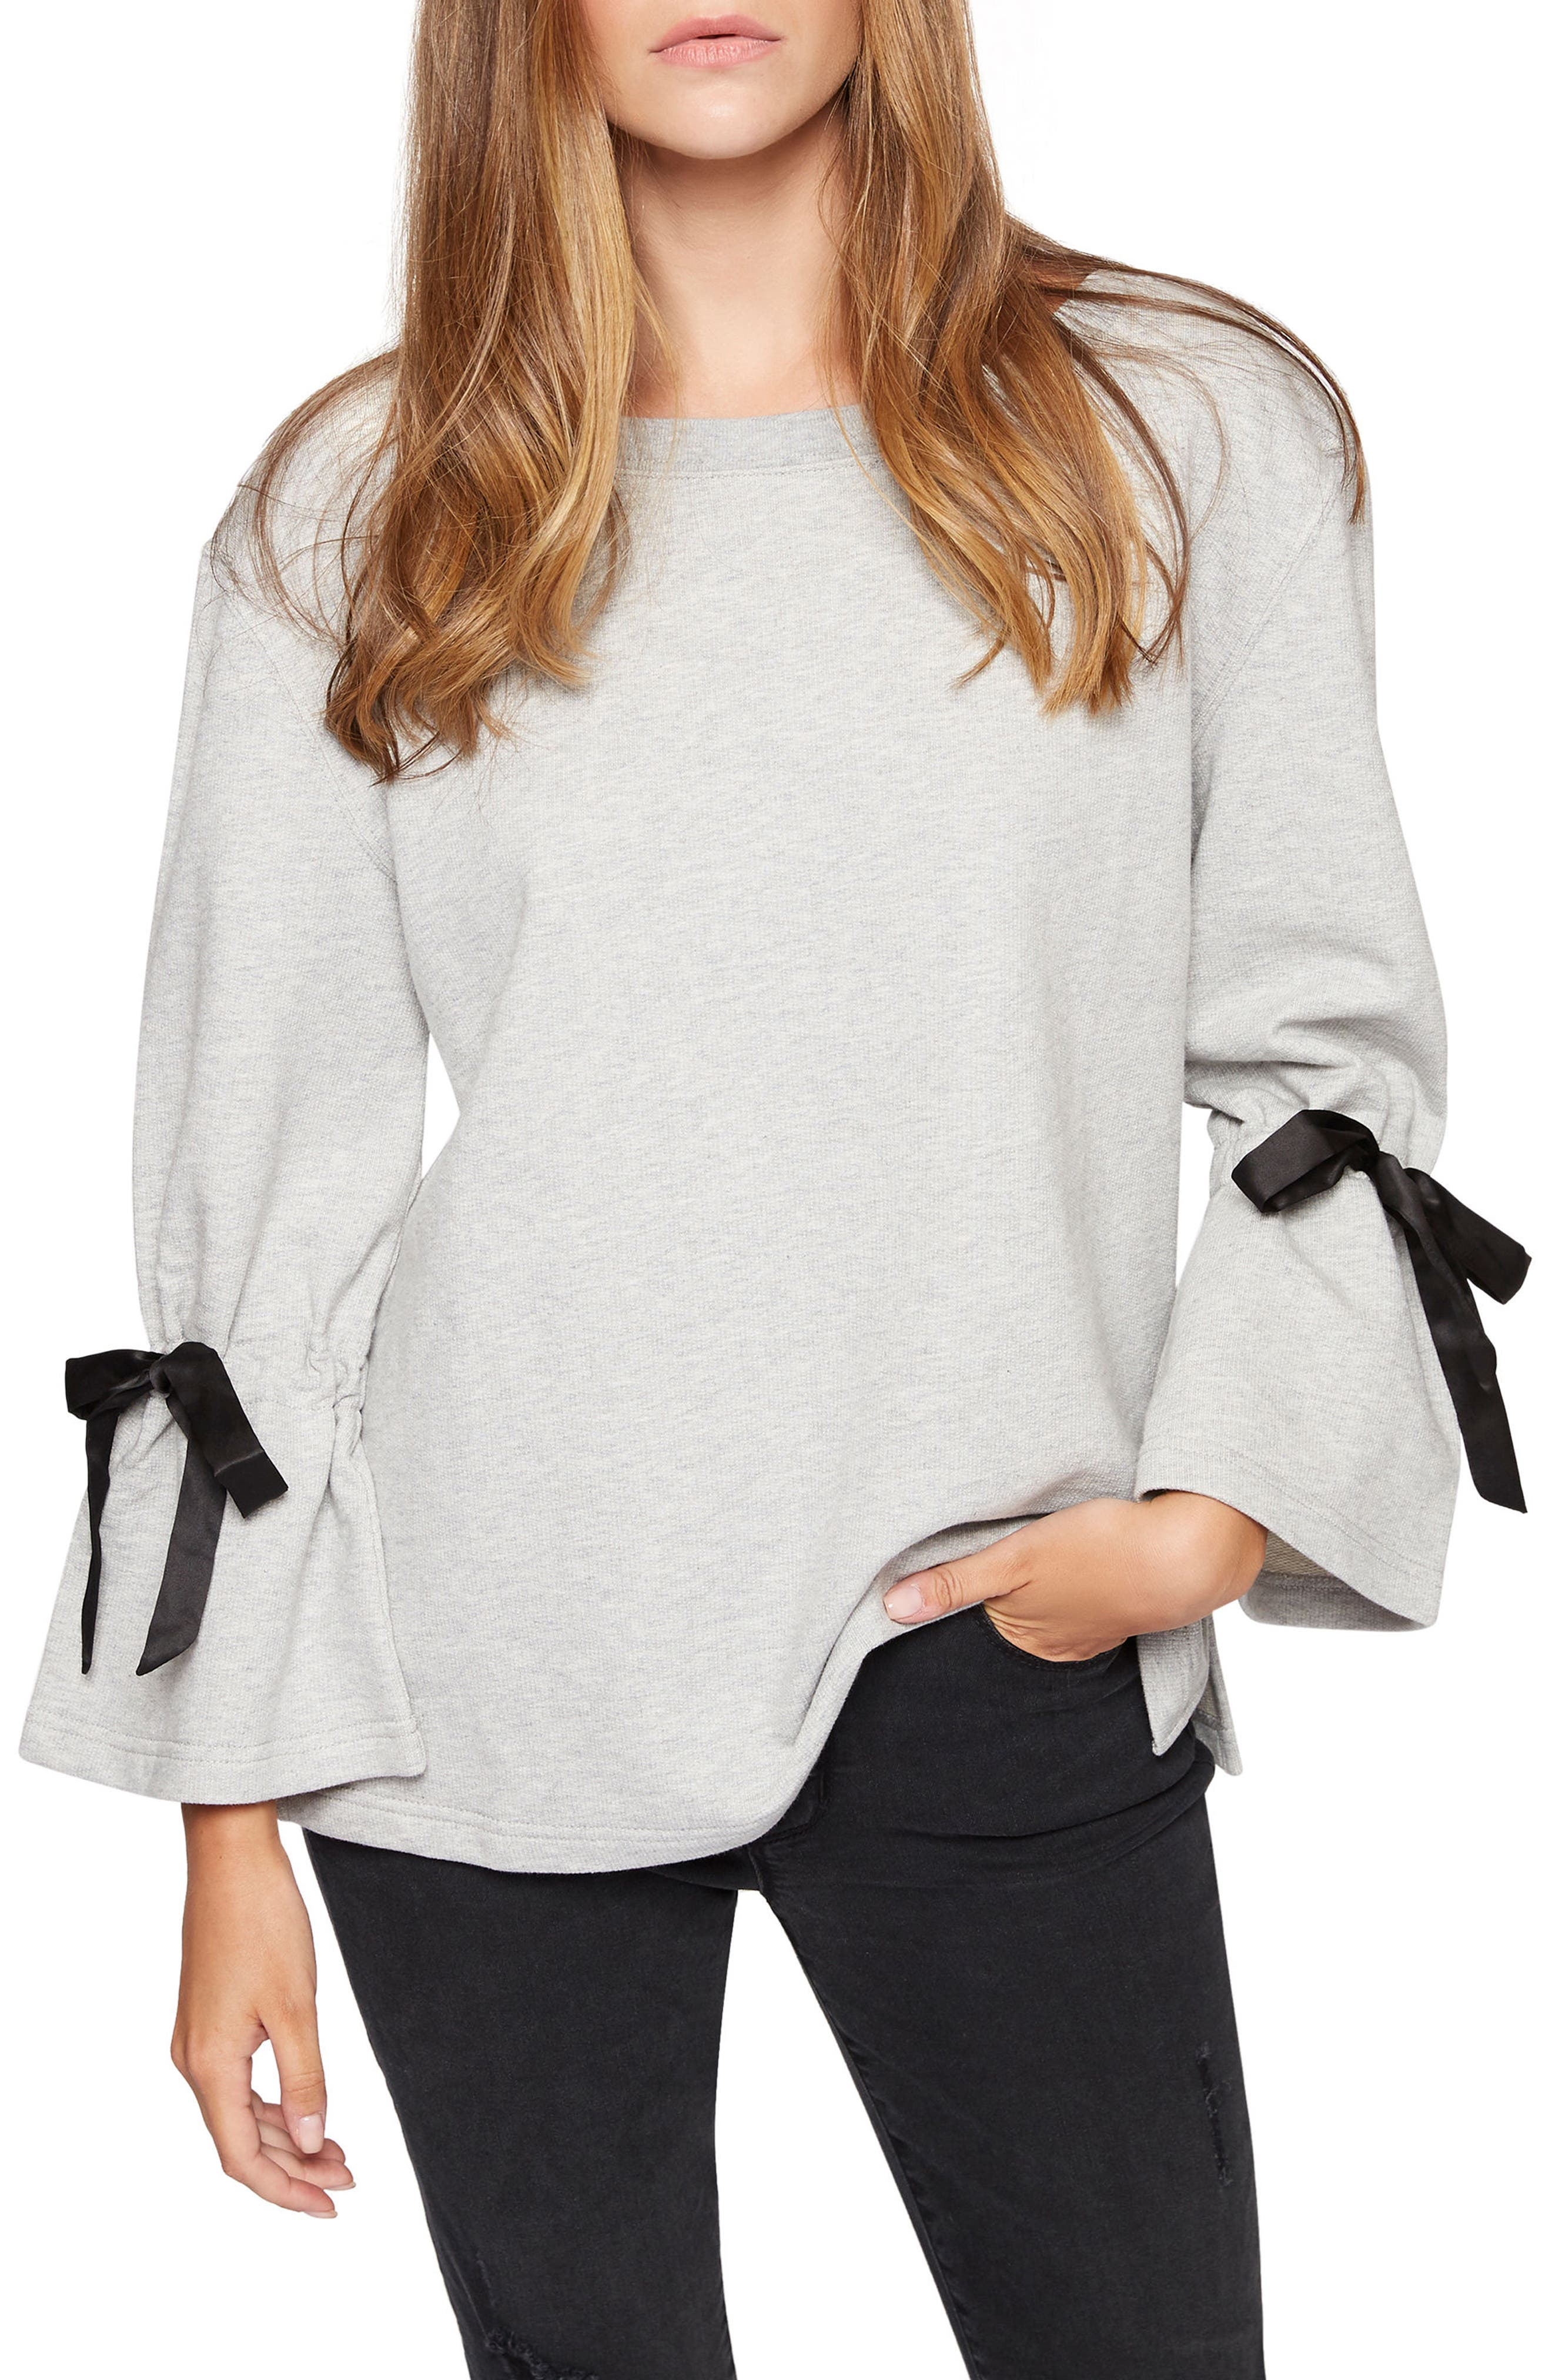 Alternate Image 1 Selected - Sanctuary Tierney Tie Sleeve Sweatshirt